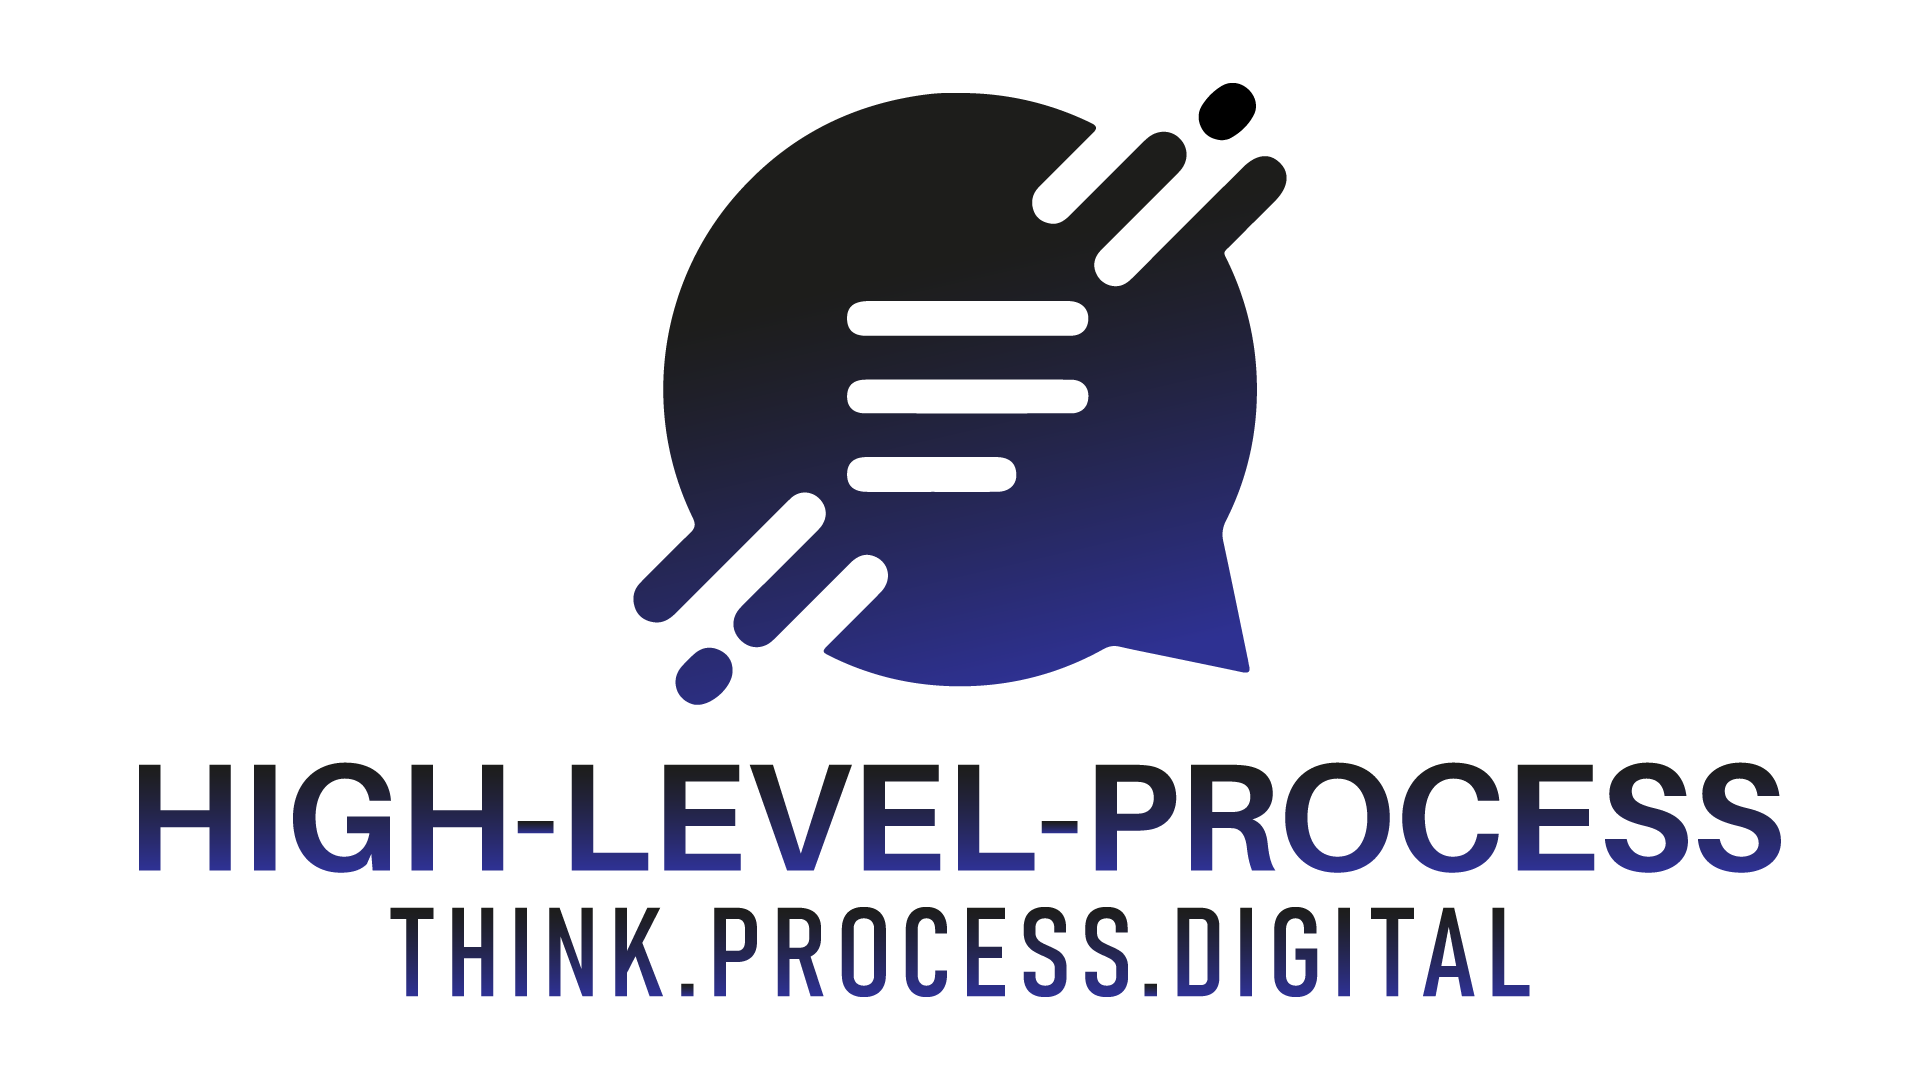 Logo of the company High-Level-Process.